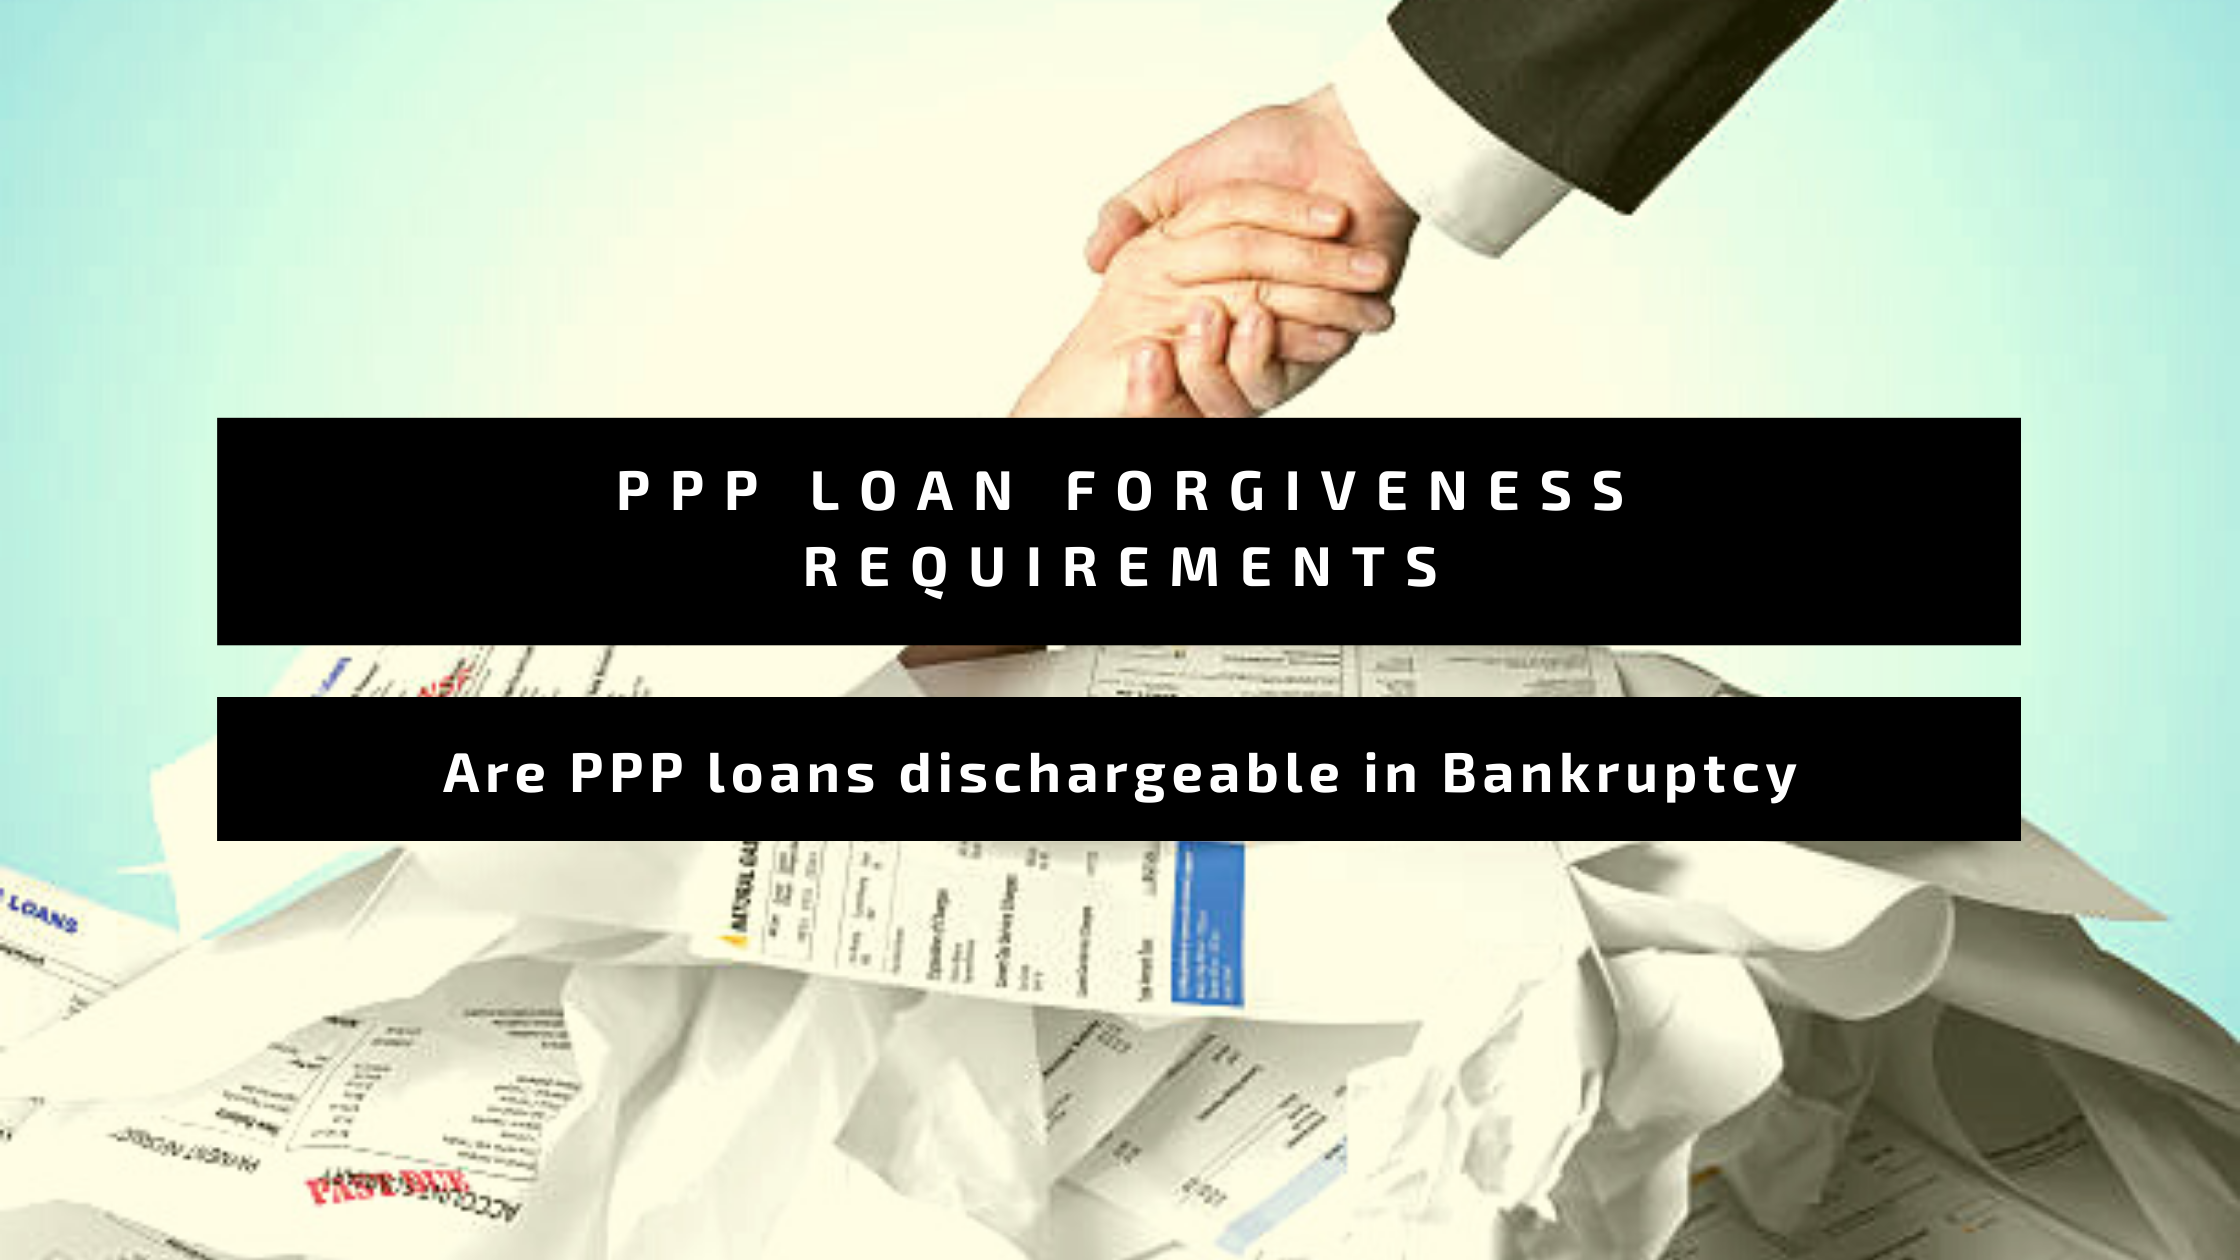 PPP loan forgiveness requirements- Are PPP loans dischargeable